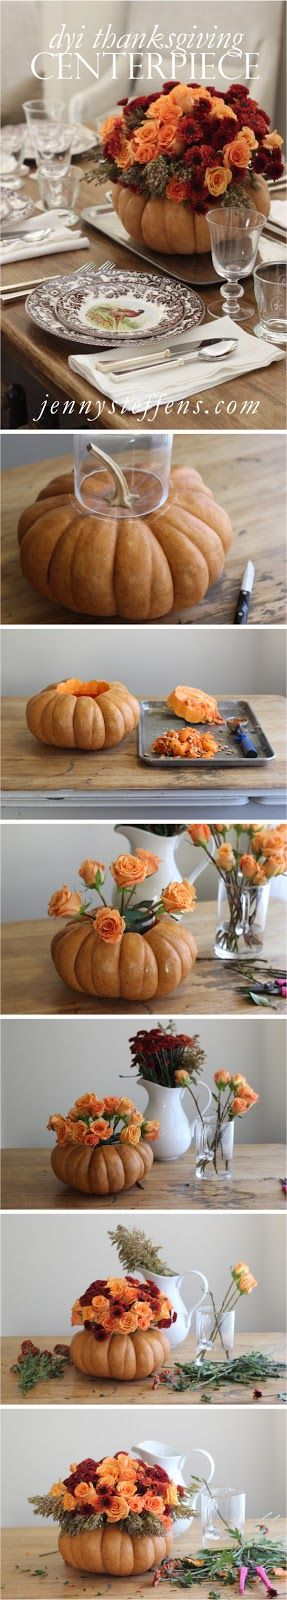 DIY Step-by-Step Rose & Mum Centerpiece in a Pumpkin for Thanksgiving    Thanksgiving Table Setting & Centerpiece